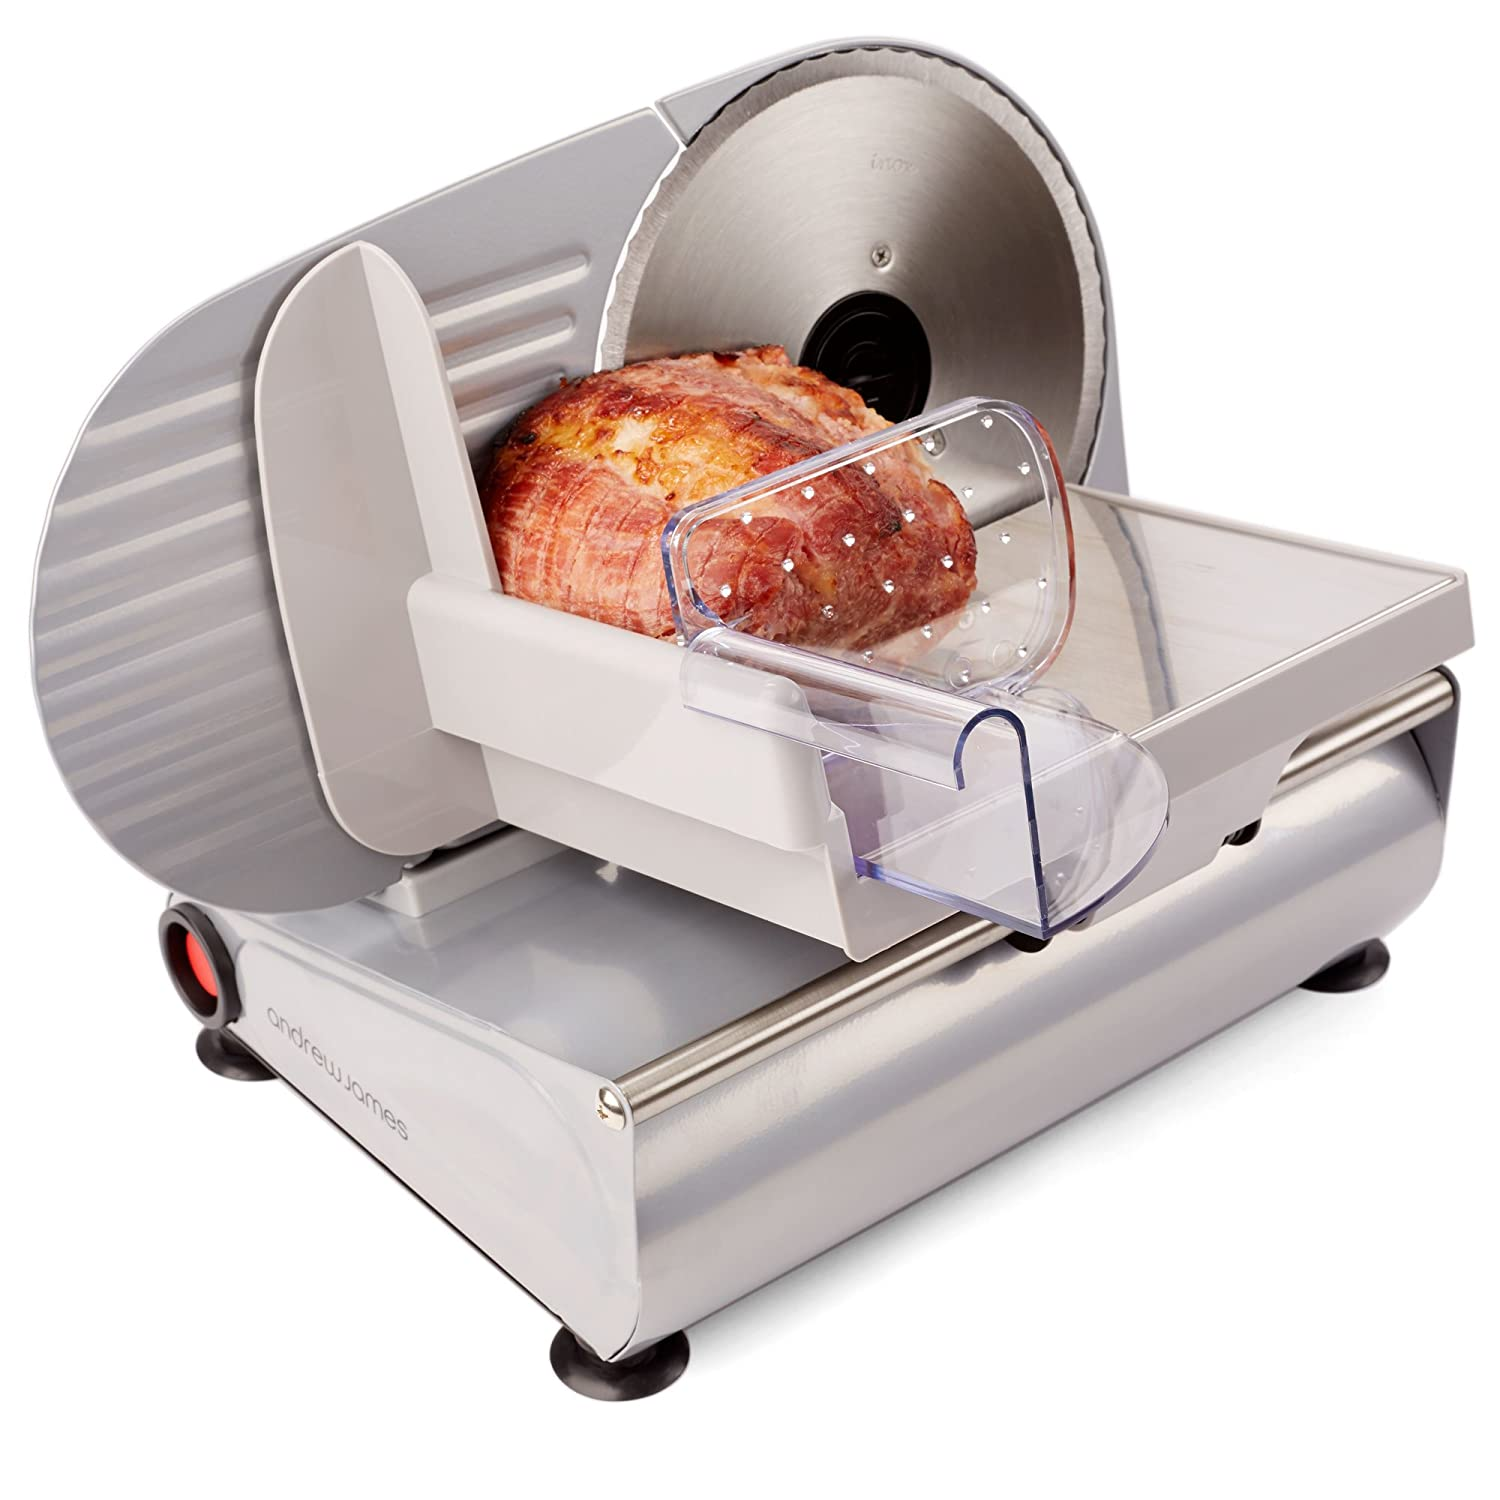 Andrew James Meat Slicer Machine for Home Use - Quiet 150W Electric ...